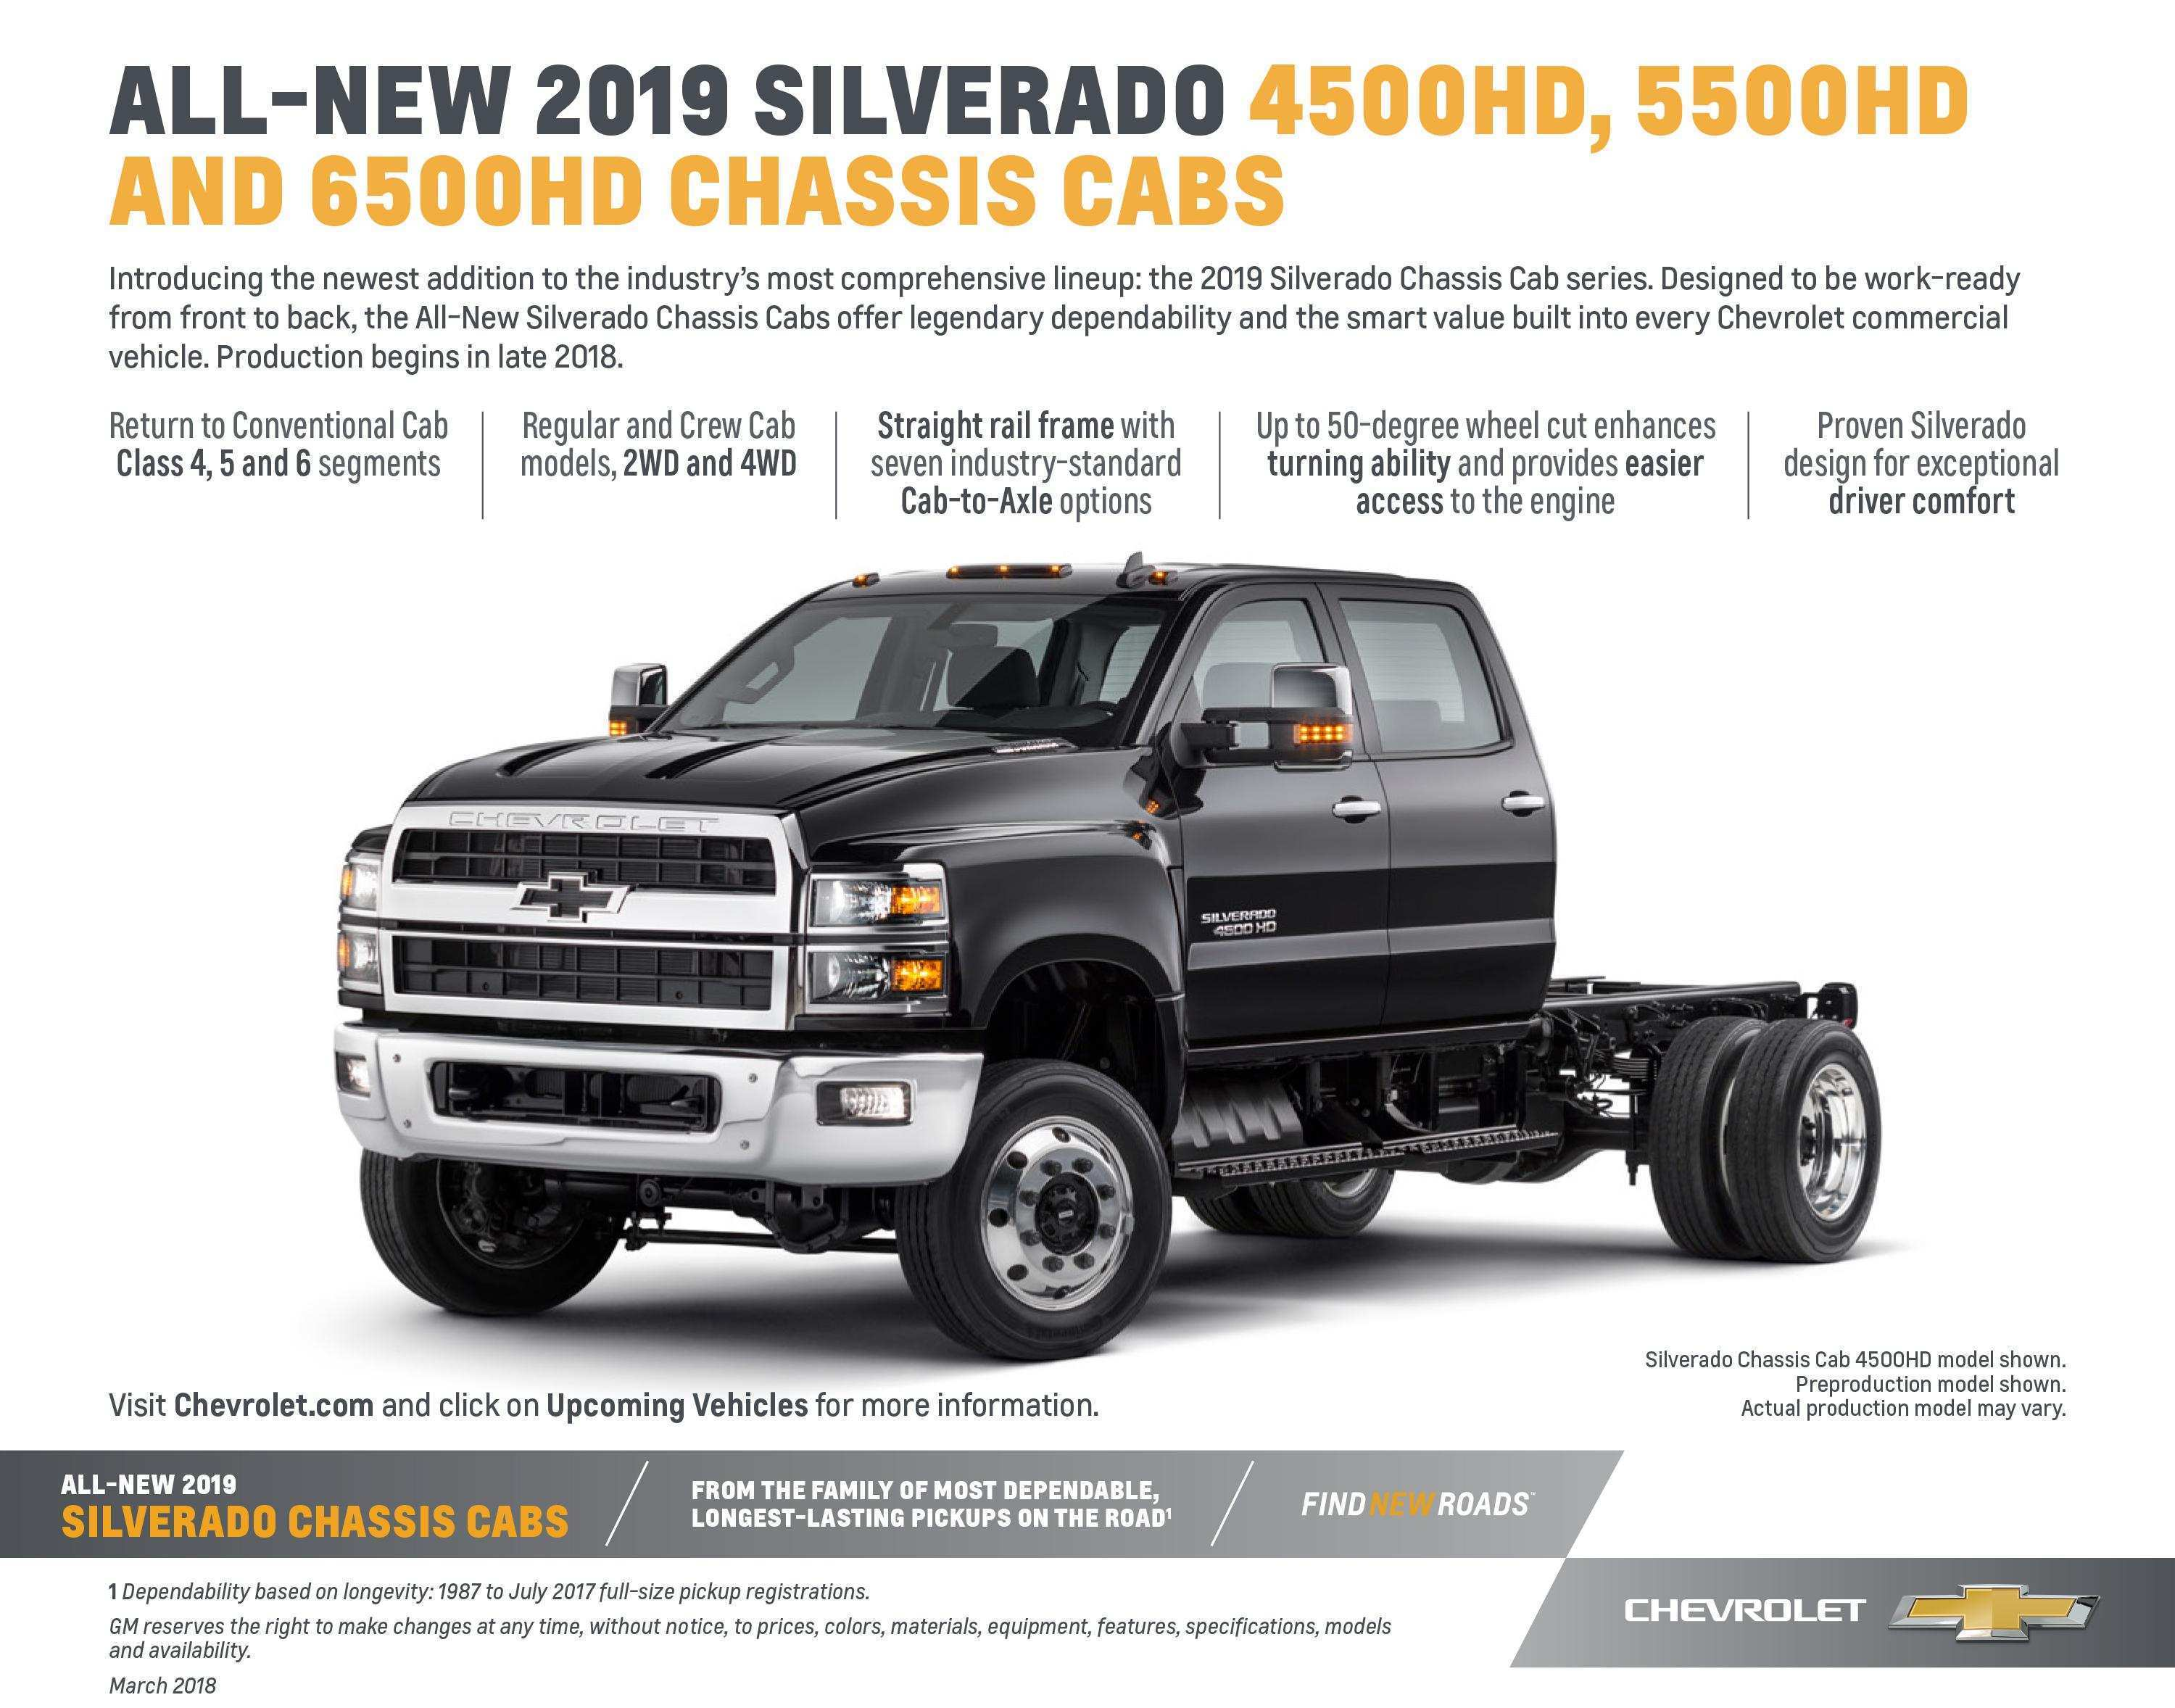 55 Gallery of 2019 Chevrolet Silverado 4500 Hd Review with 2019 Chevrolet Silverado 4500 Hd